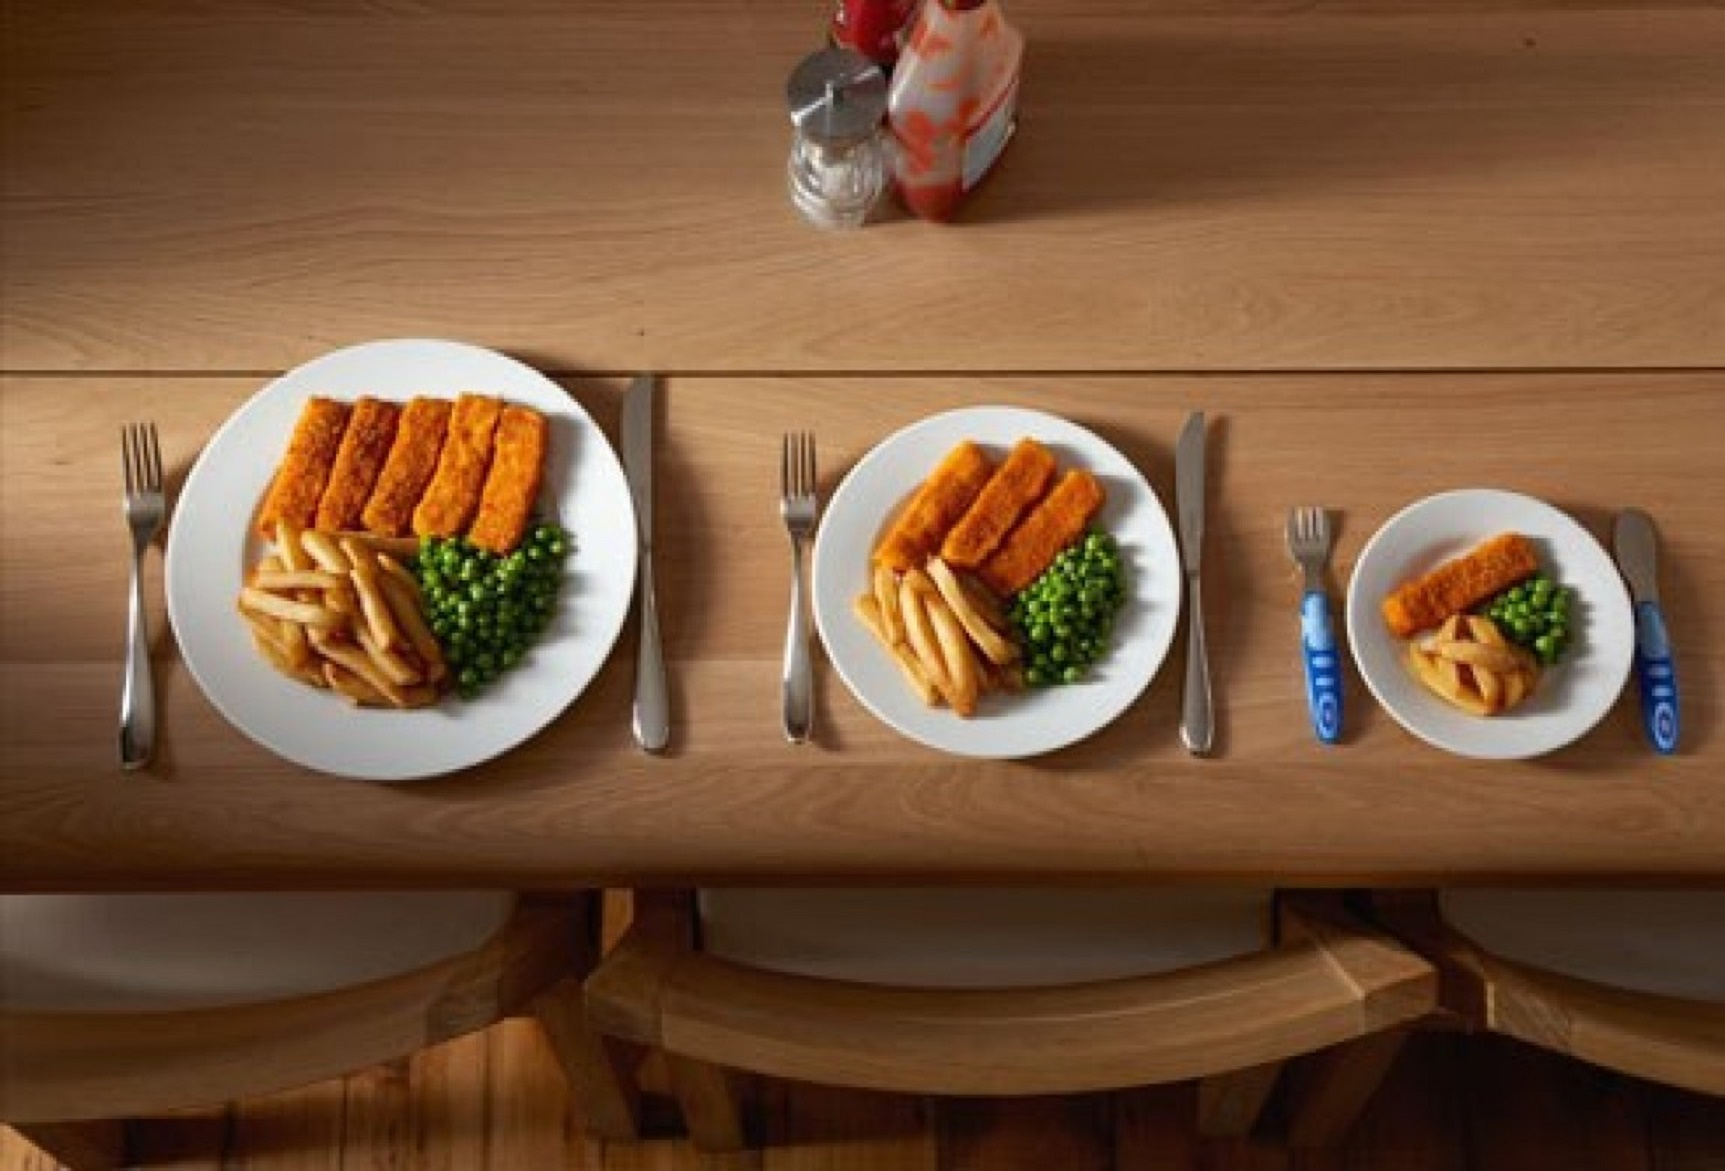 A surprising discovery about fast food portion sizes | Lunatic ...